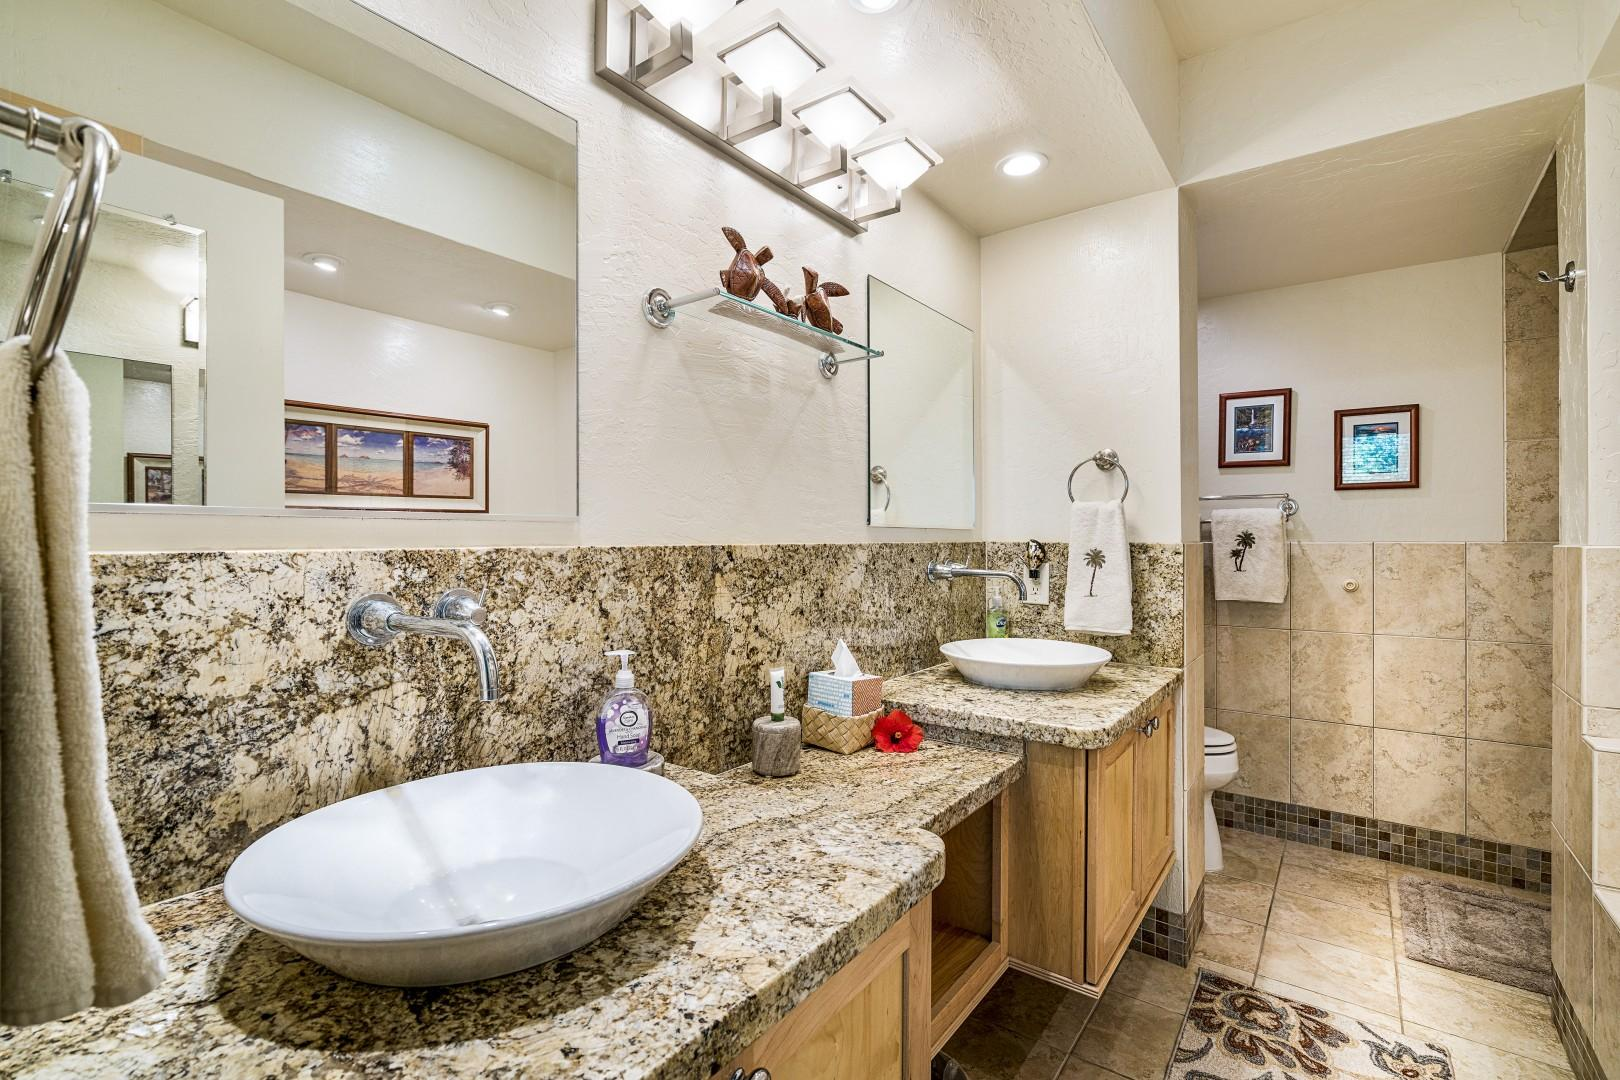 High end finishes in the fully remodeled Master bath!